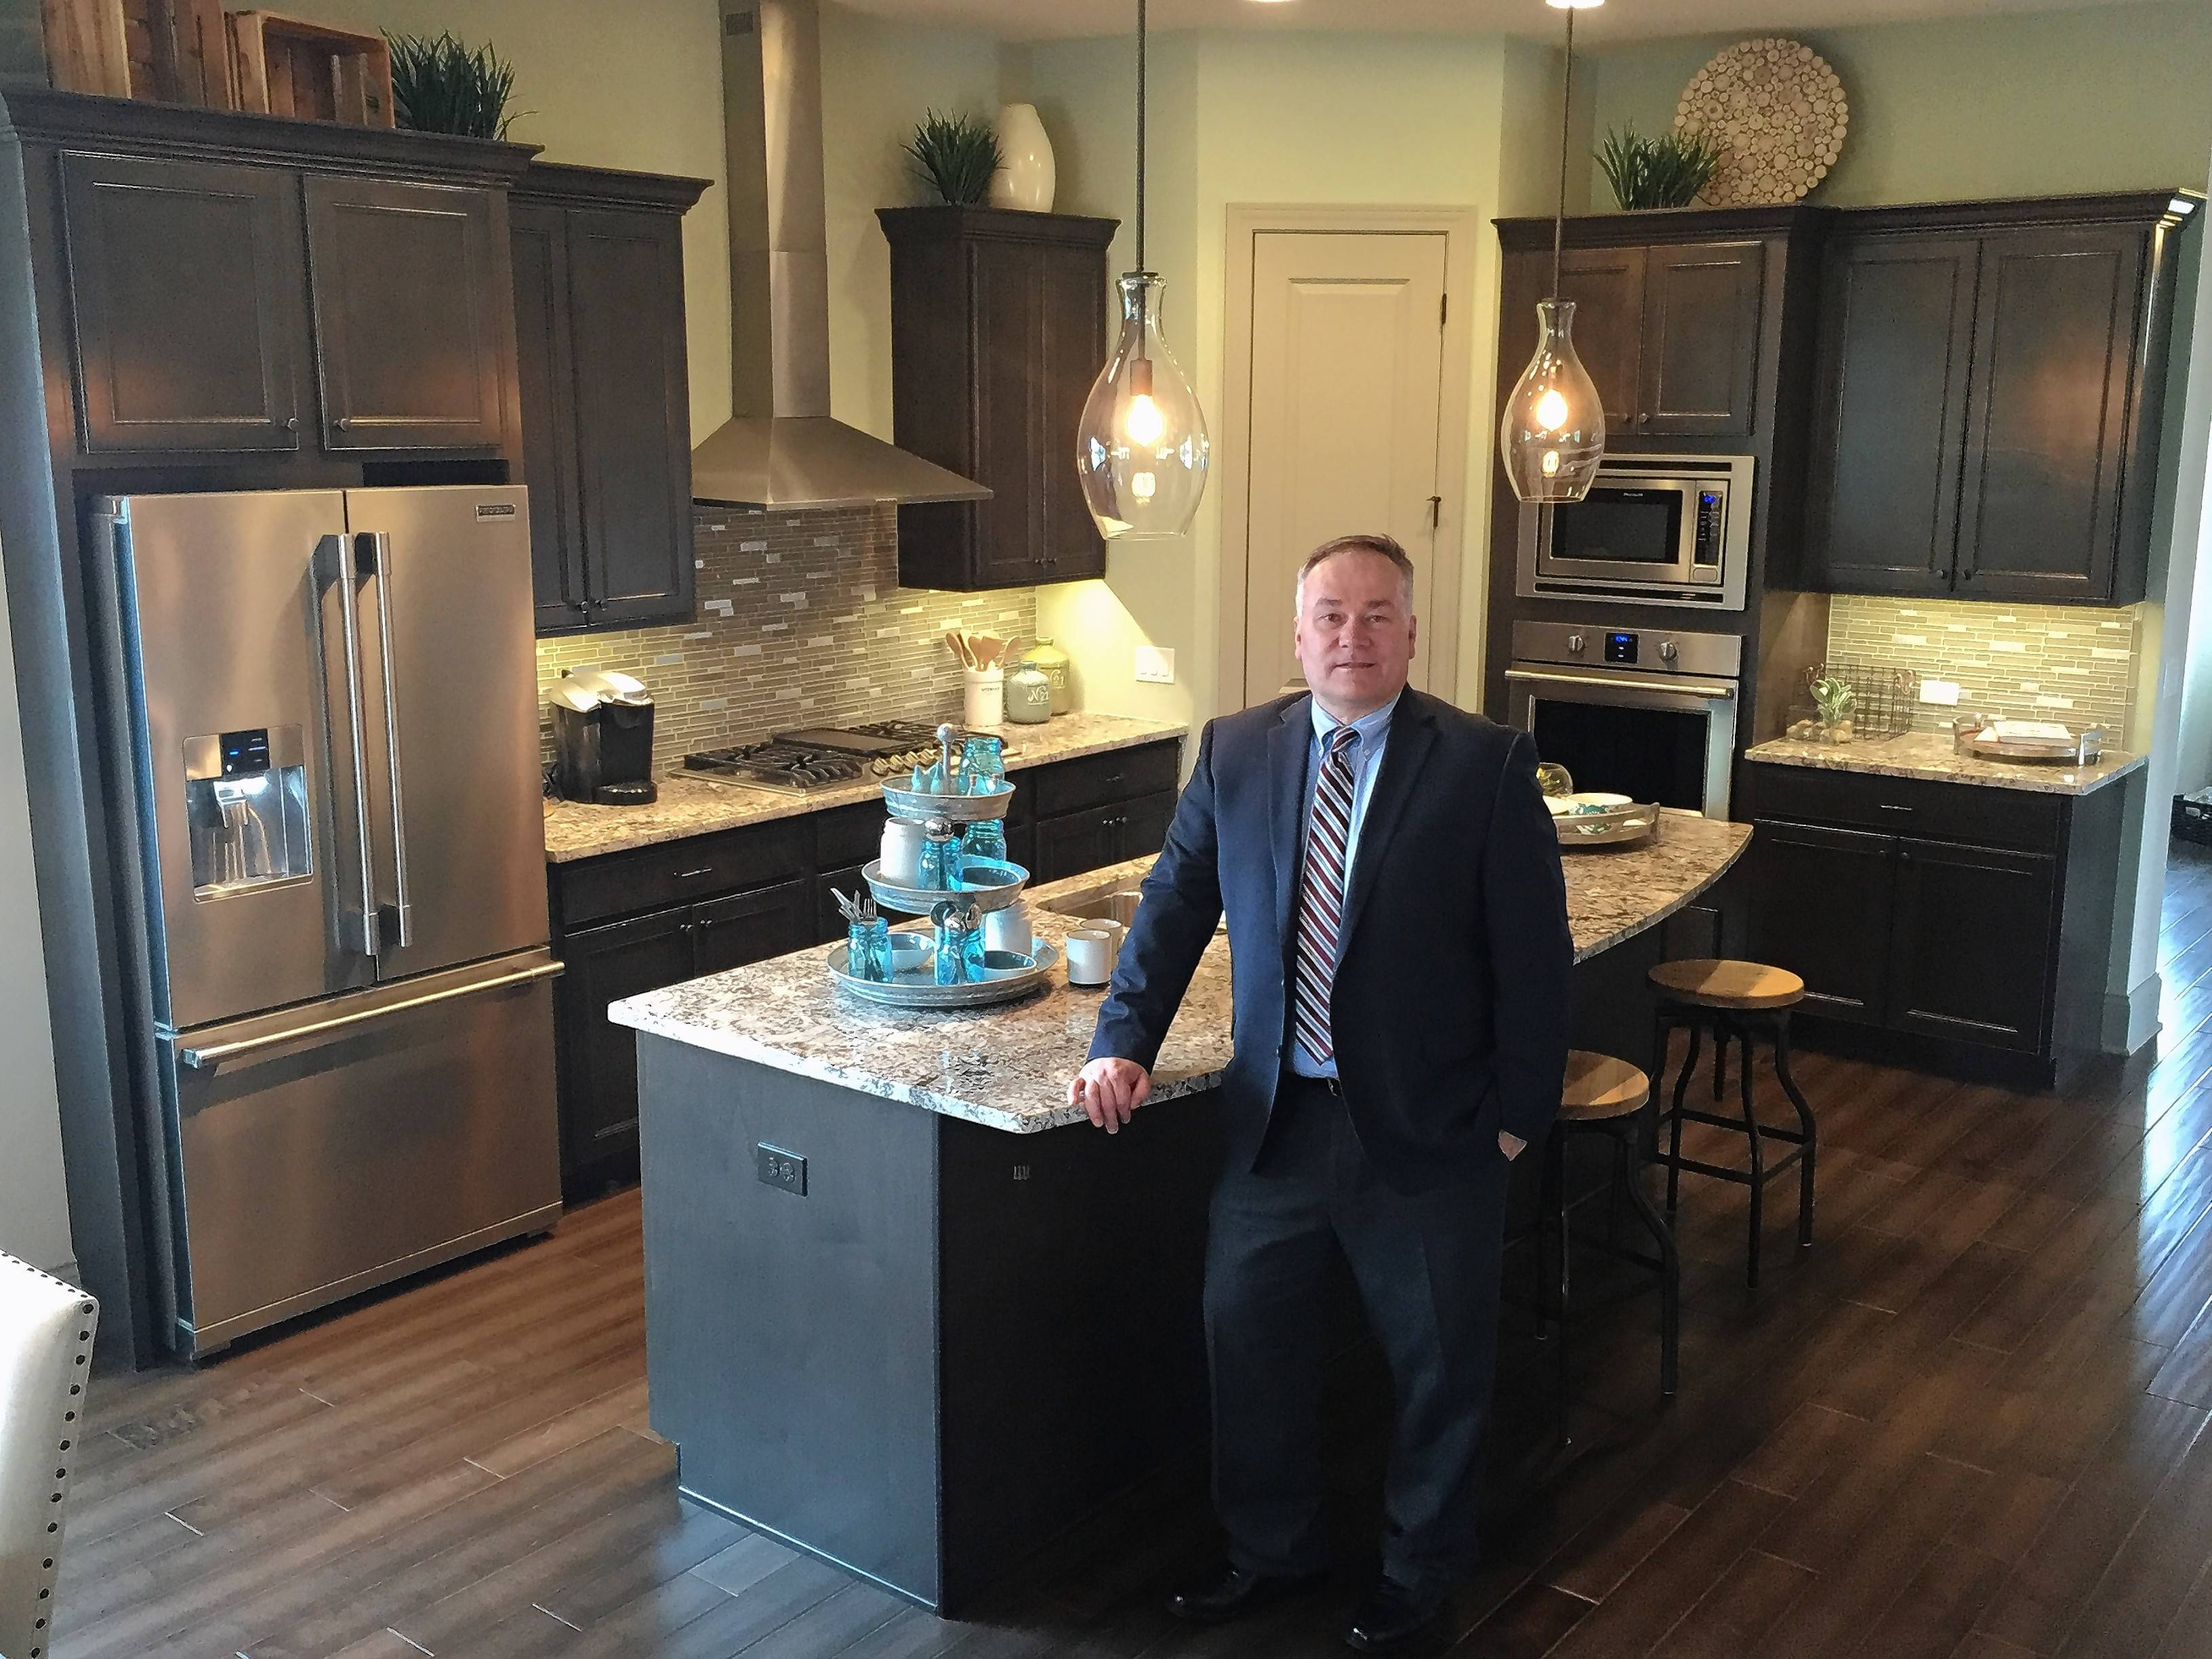 The Reserve in Barrington, a gated community of 43 houses, is the first development by David Weekley Homes since it moved into the Chicago market, said Richard Bridges, sales manager for its Chicago division.